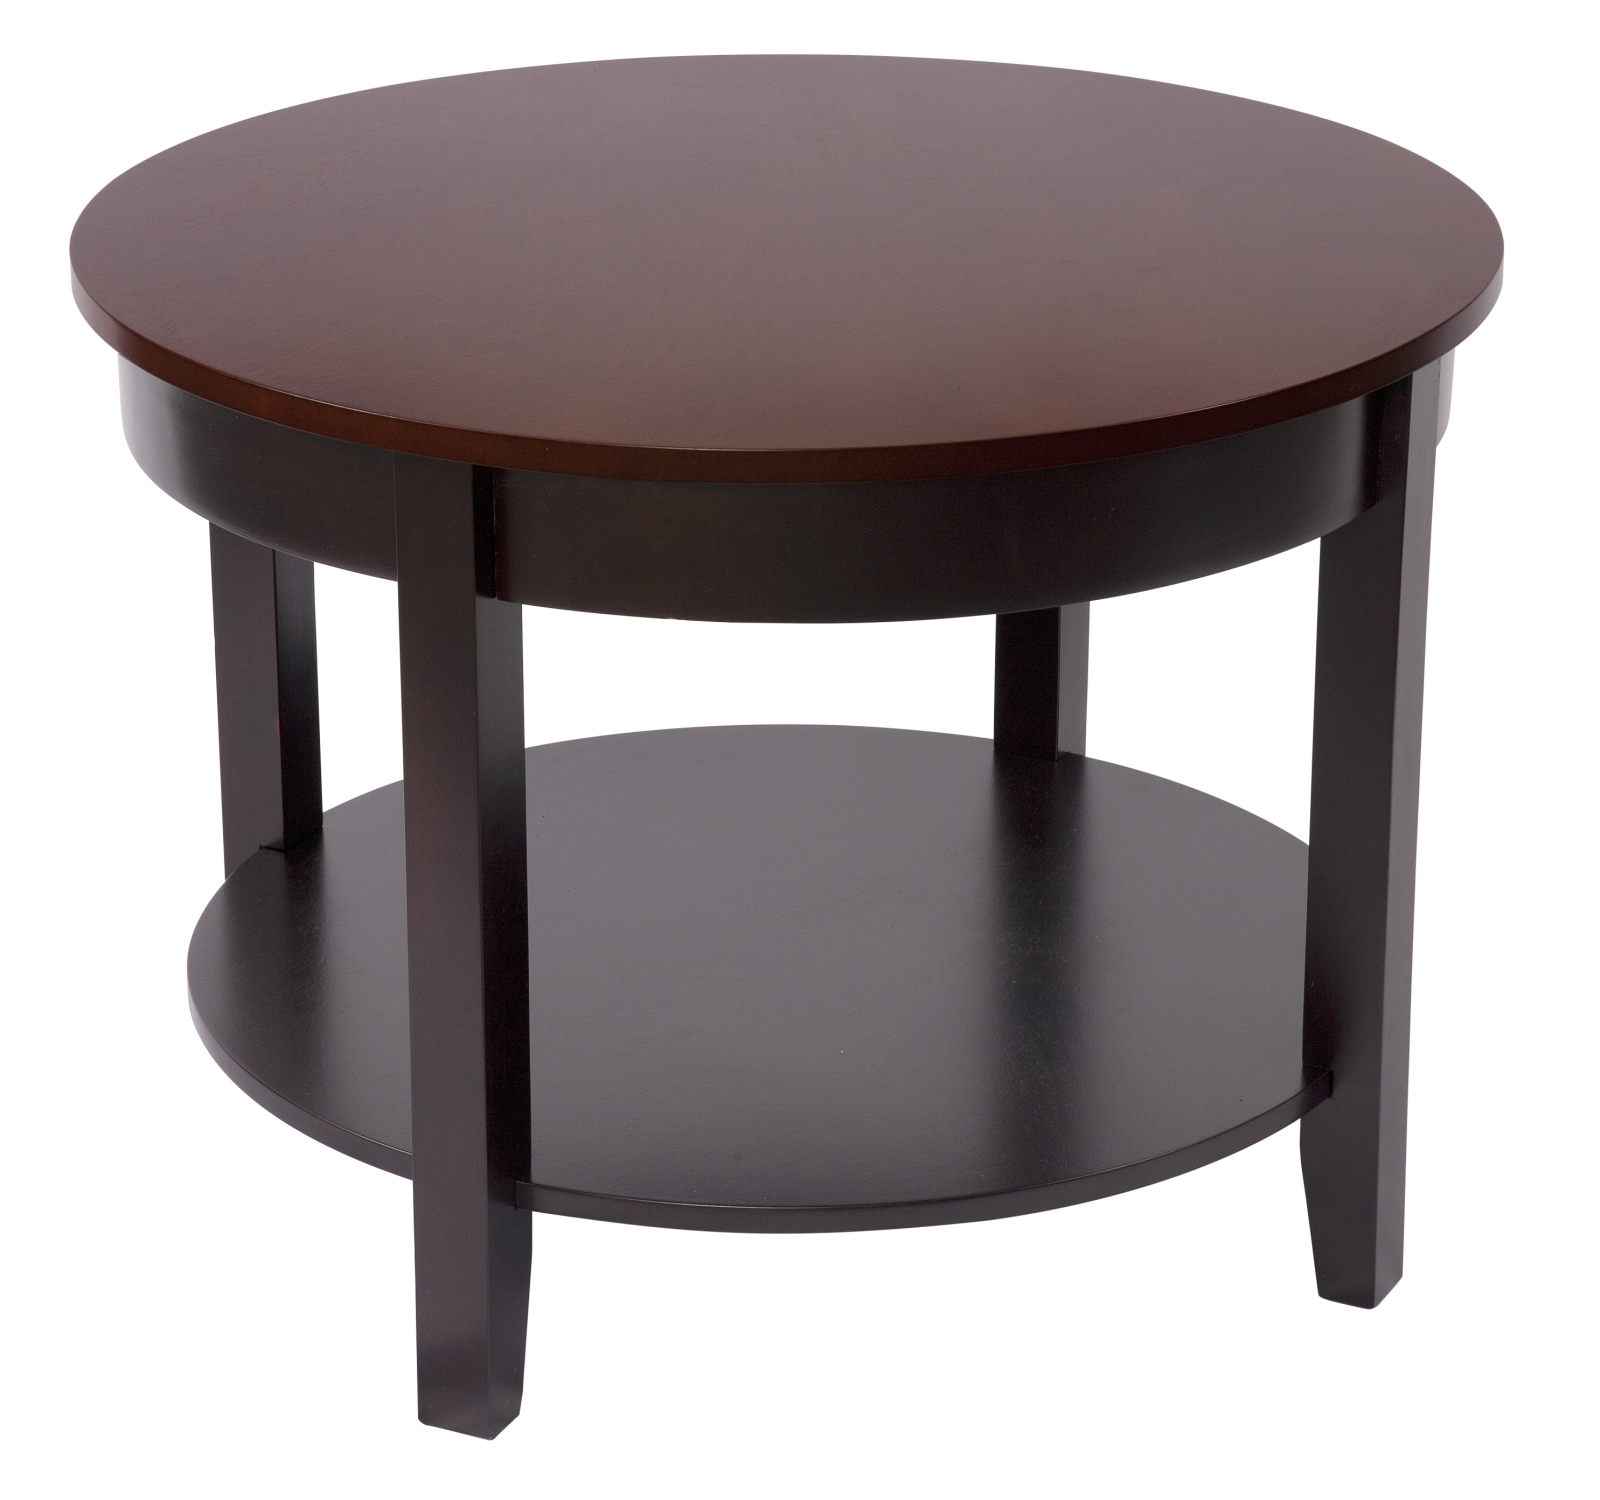 Images Of Round Coffee Tables 30 Inch Round Coffee Table Collection Roy Home Design